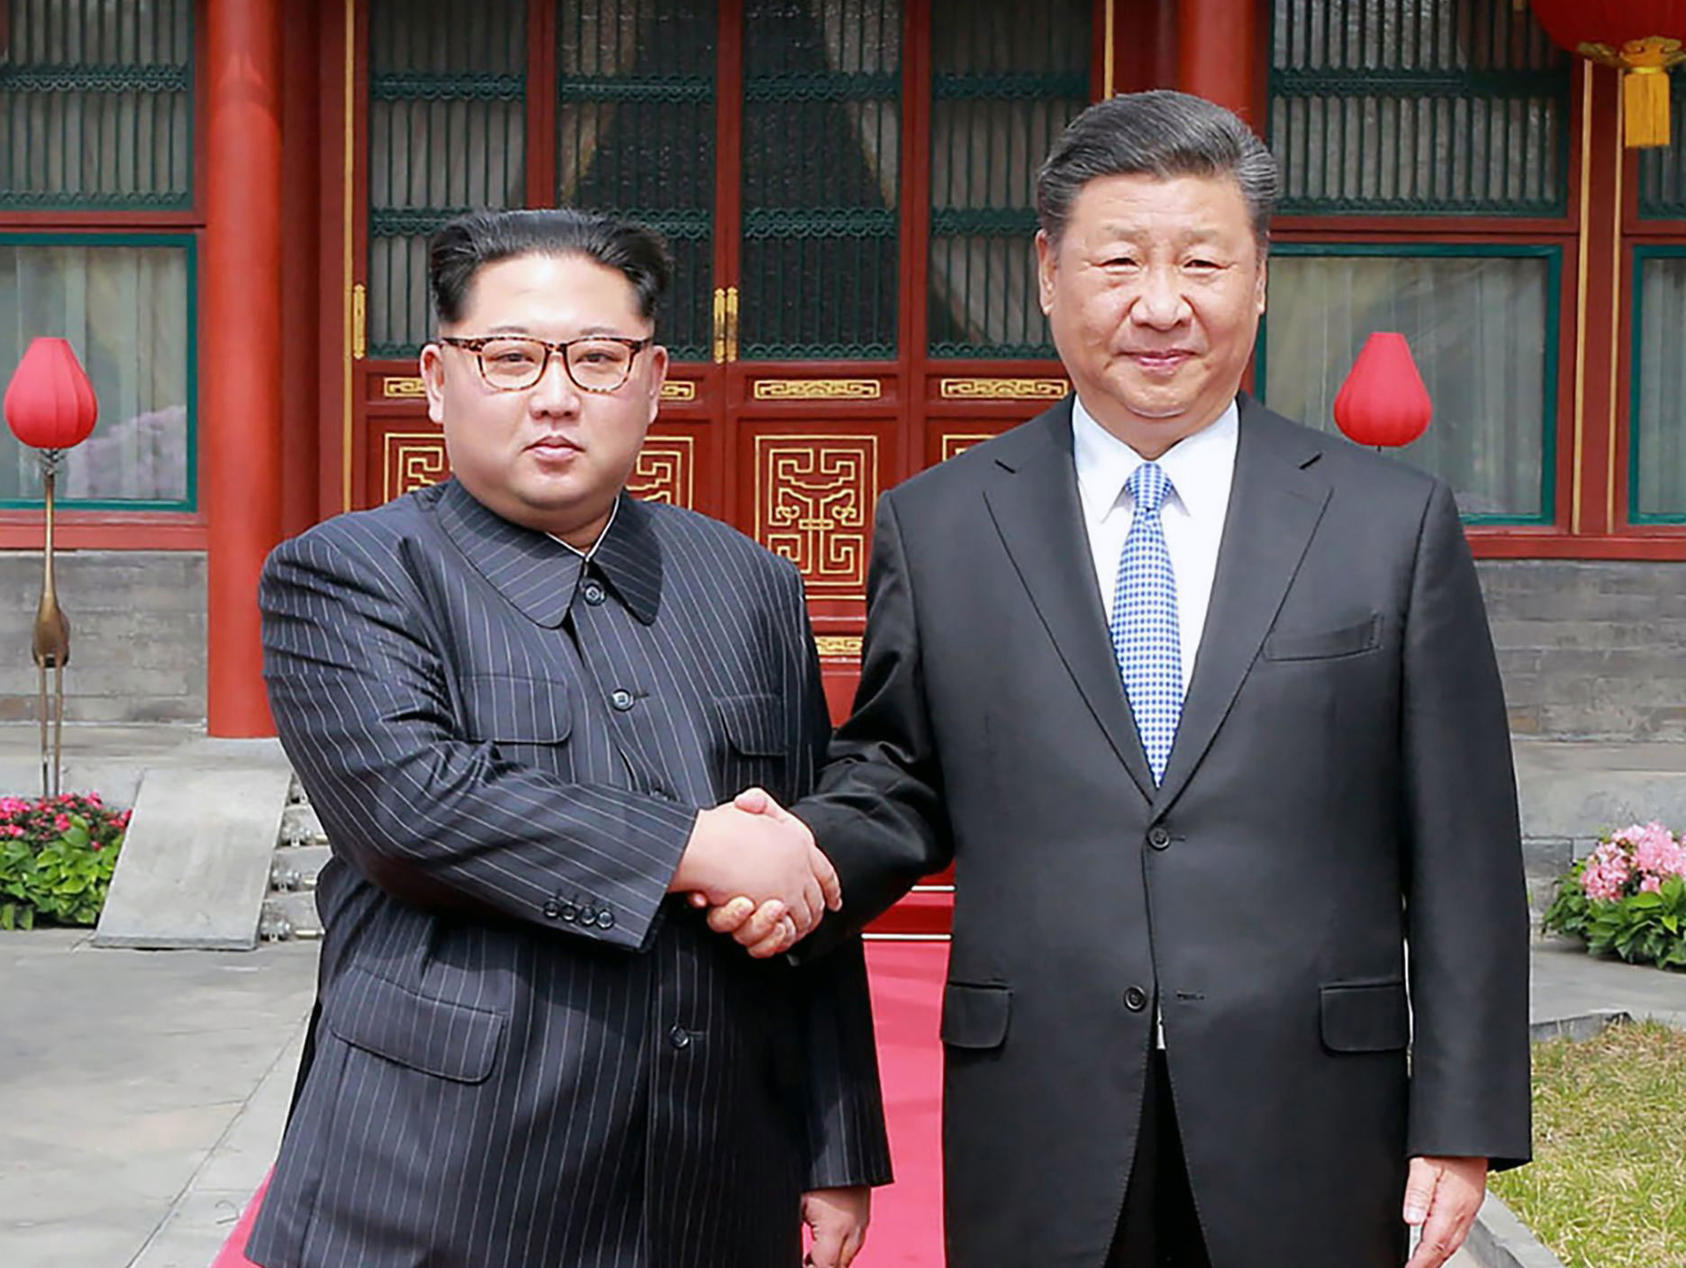 President Xi Jinping of China, right, shakes hands with Kim Jong-un, North Korea's leader